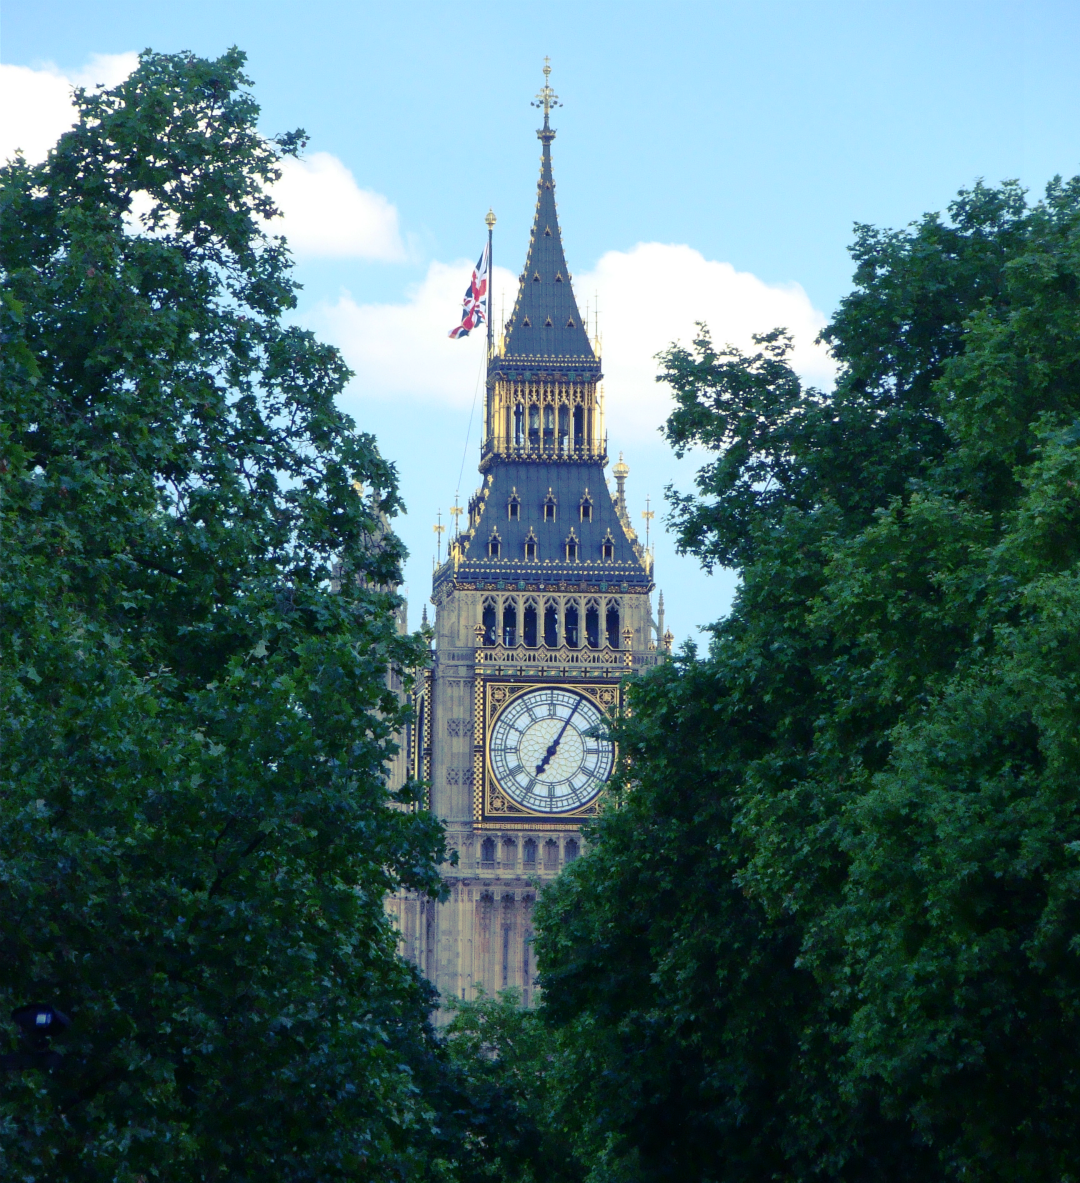 Queen Elizabeth II Tower / Clock Tower, Palace of Westminster, London, photographed on 7 June 2014